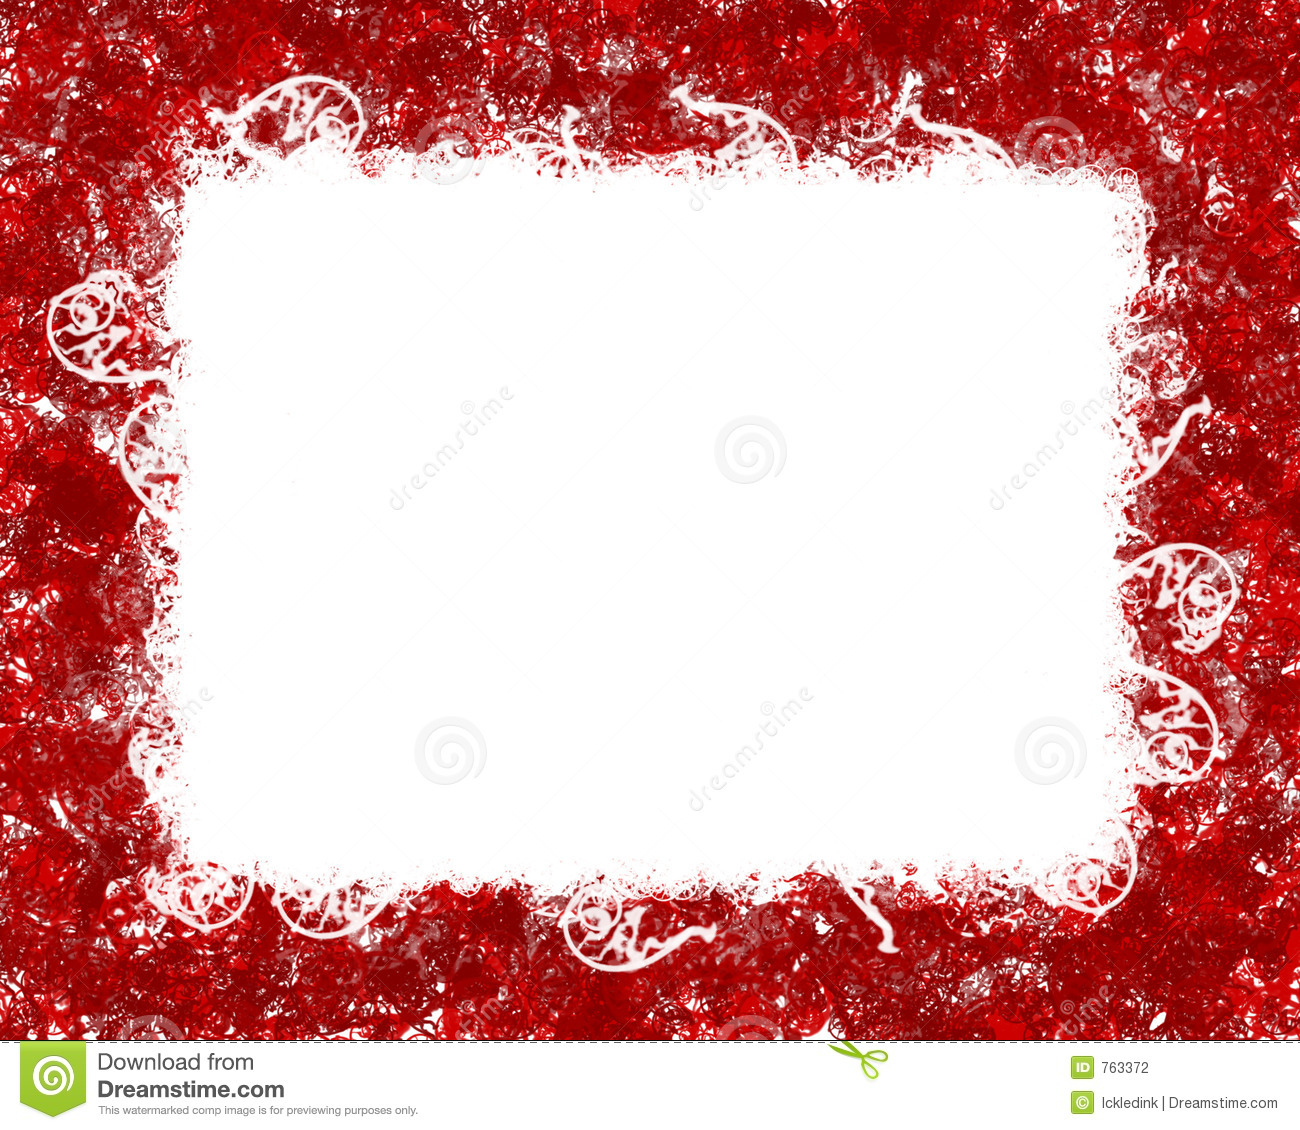 Red Frame Stock Photography - Image: 763372: www.dreamstime.com/stock-photography-red-frame-image763372